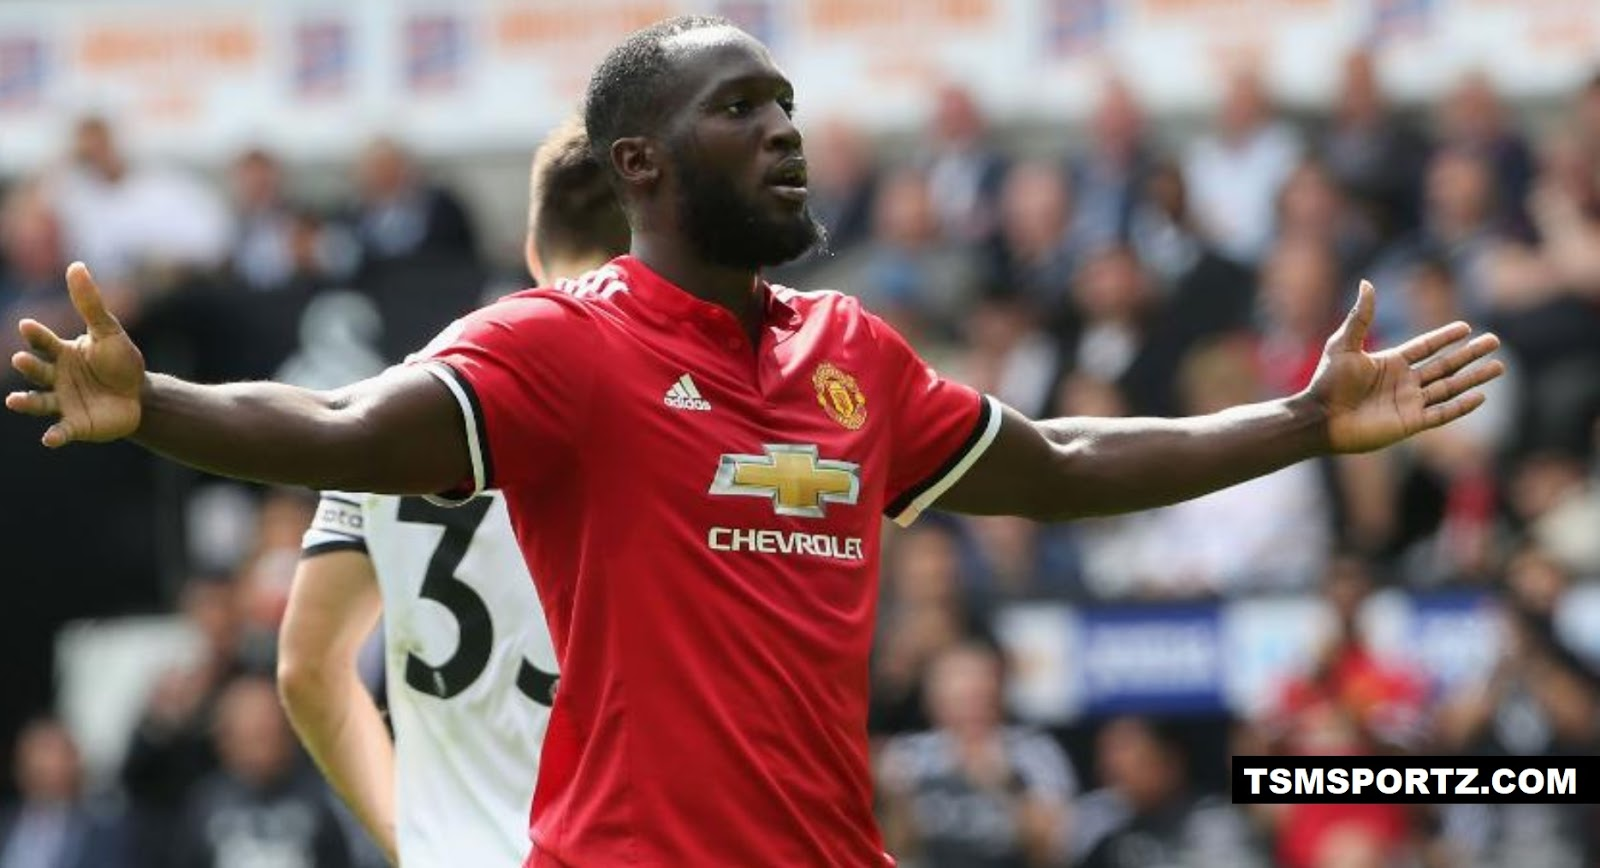 Manchester United signed on big transfer fees (Lukaku)